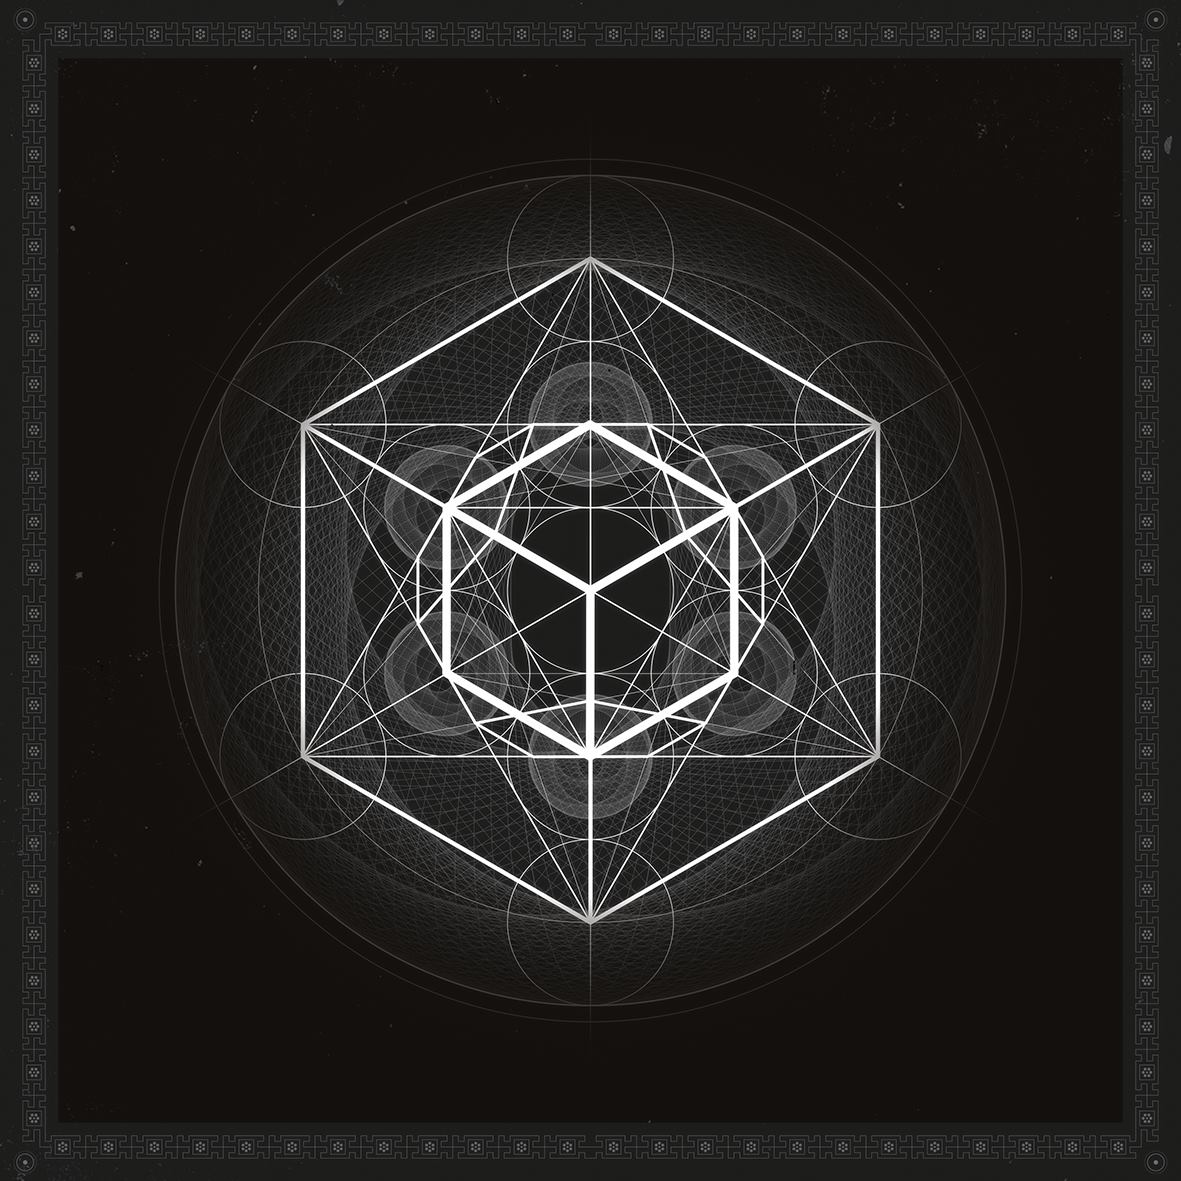 3D render metatron with complex shapes and geometry